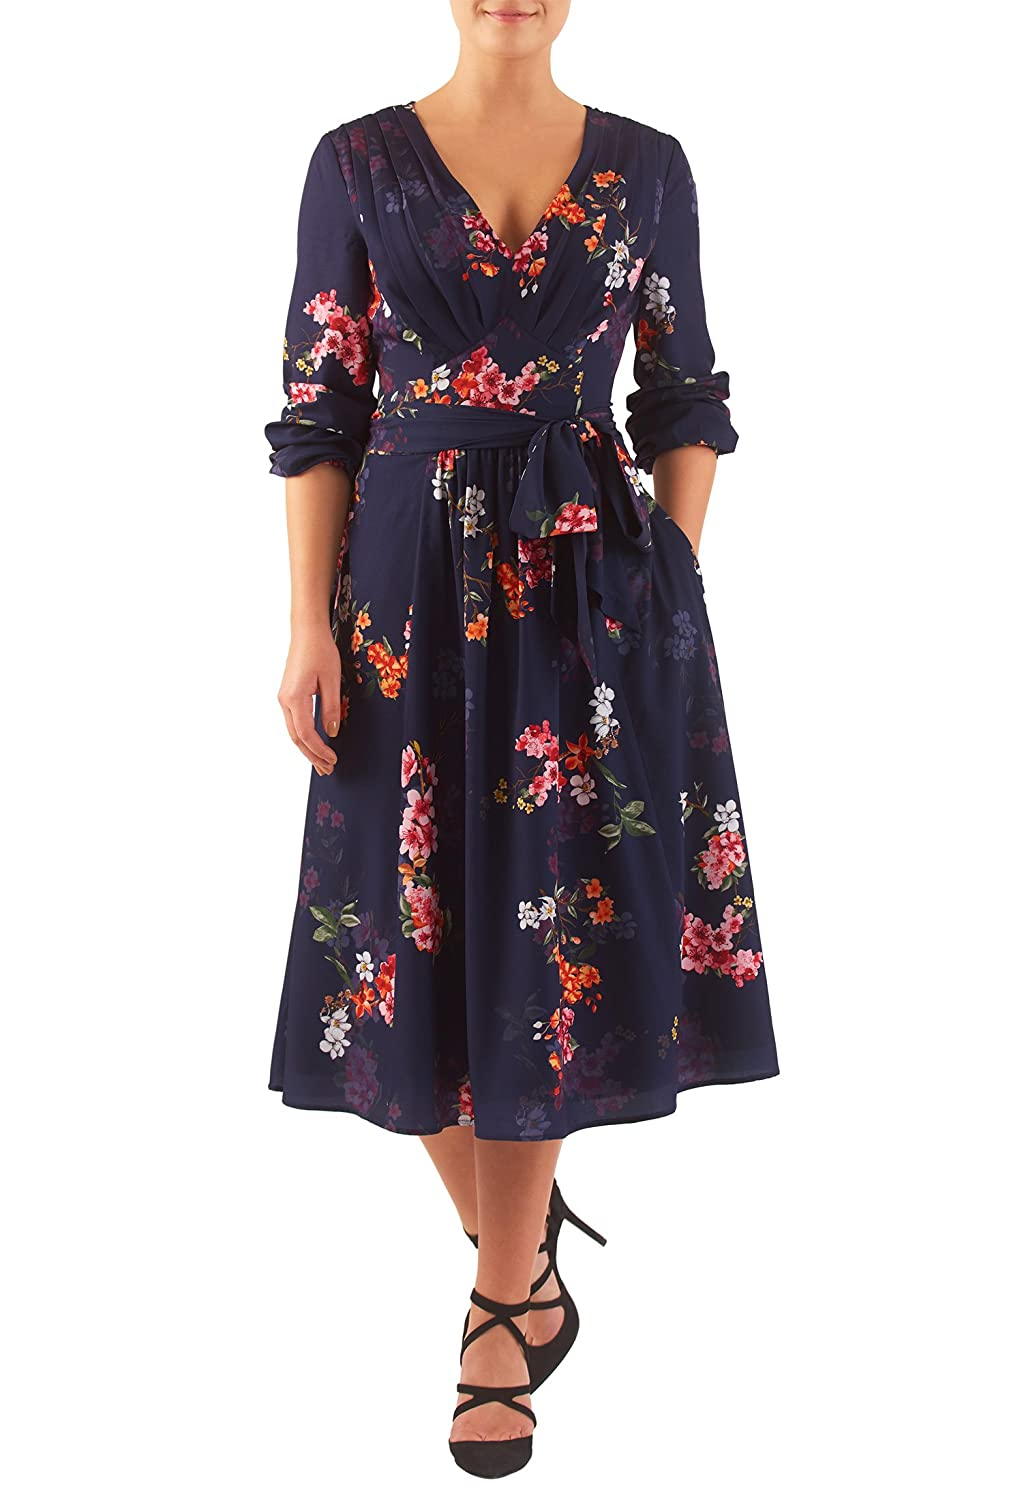 Plus Size Retro Dresses eShakti Womens Pleated floral print crepe midi dress $69.95 AT vintagedancer.com